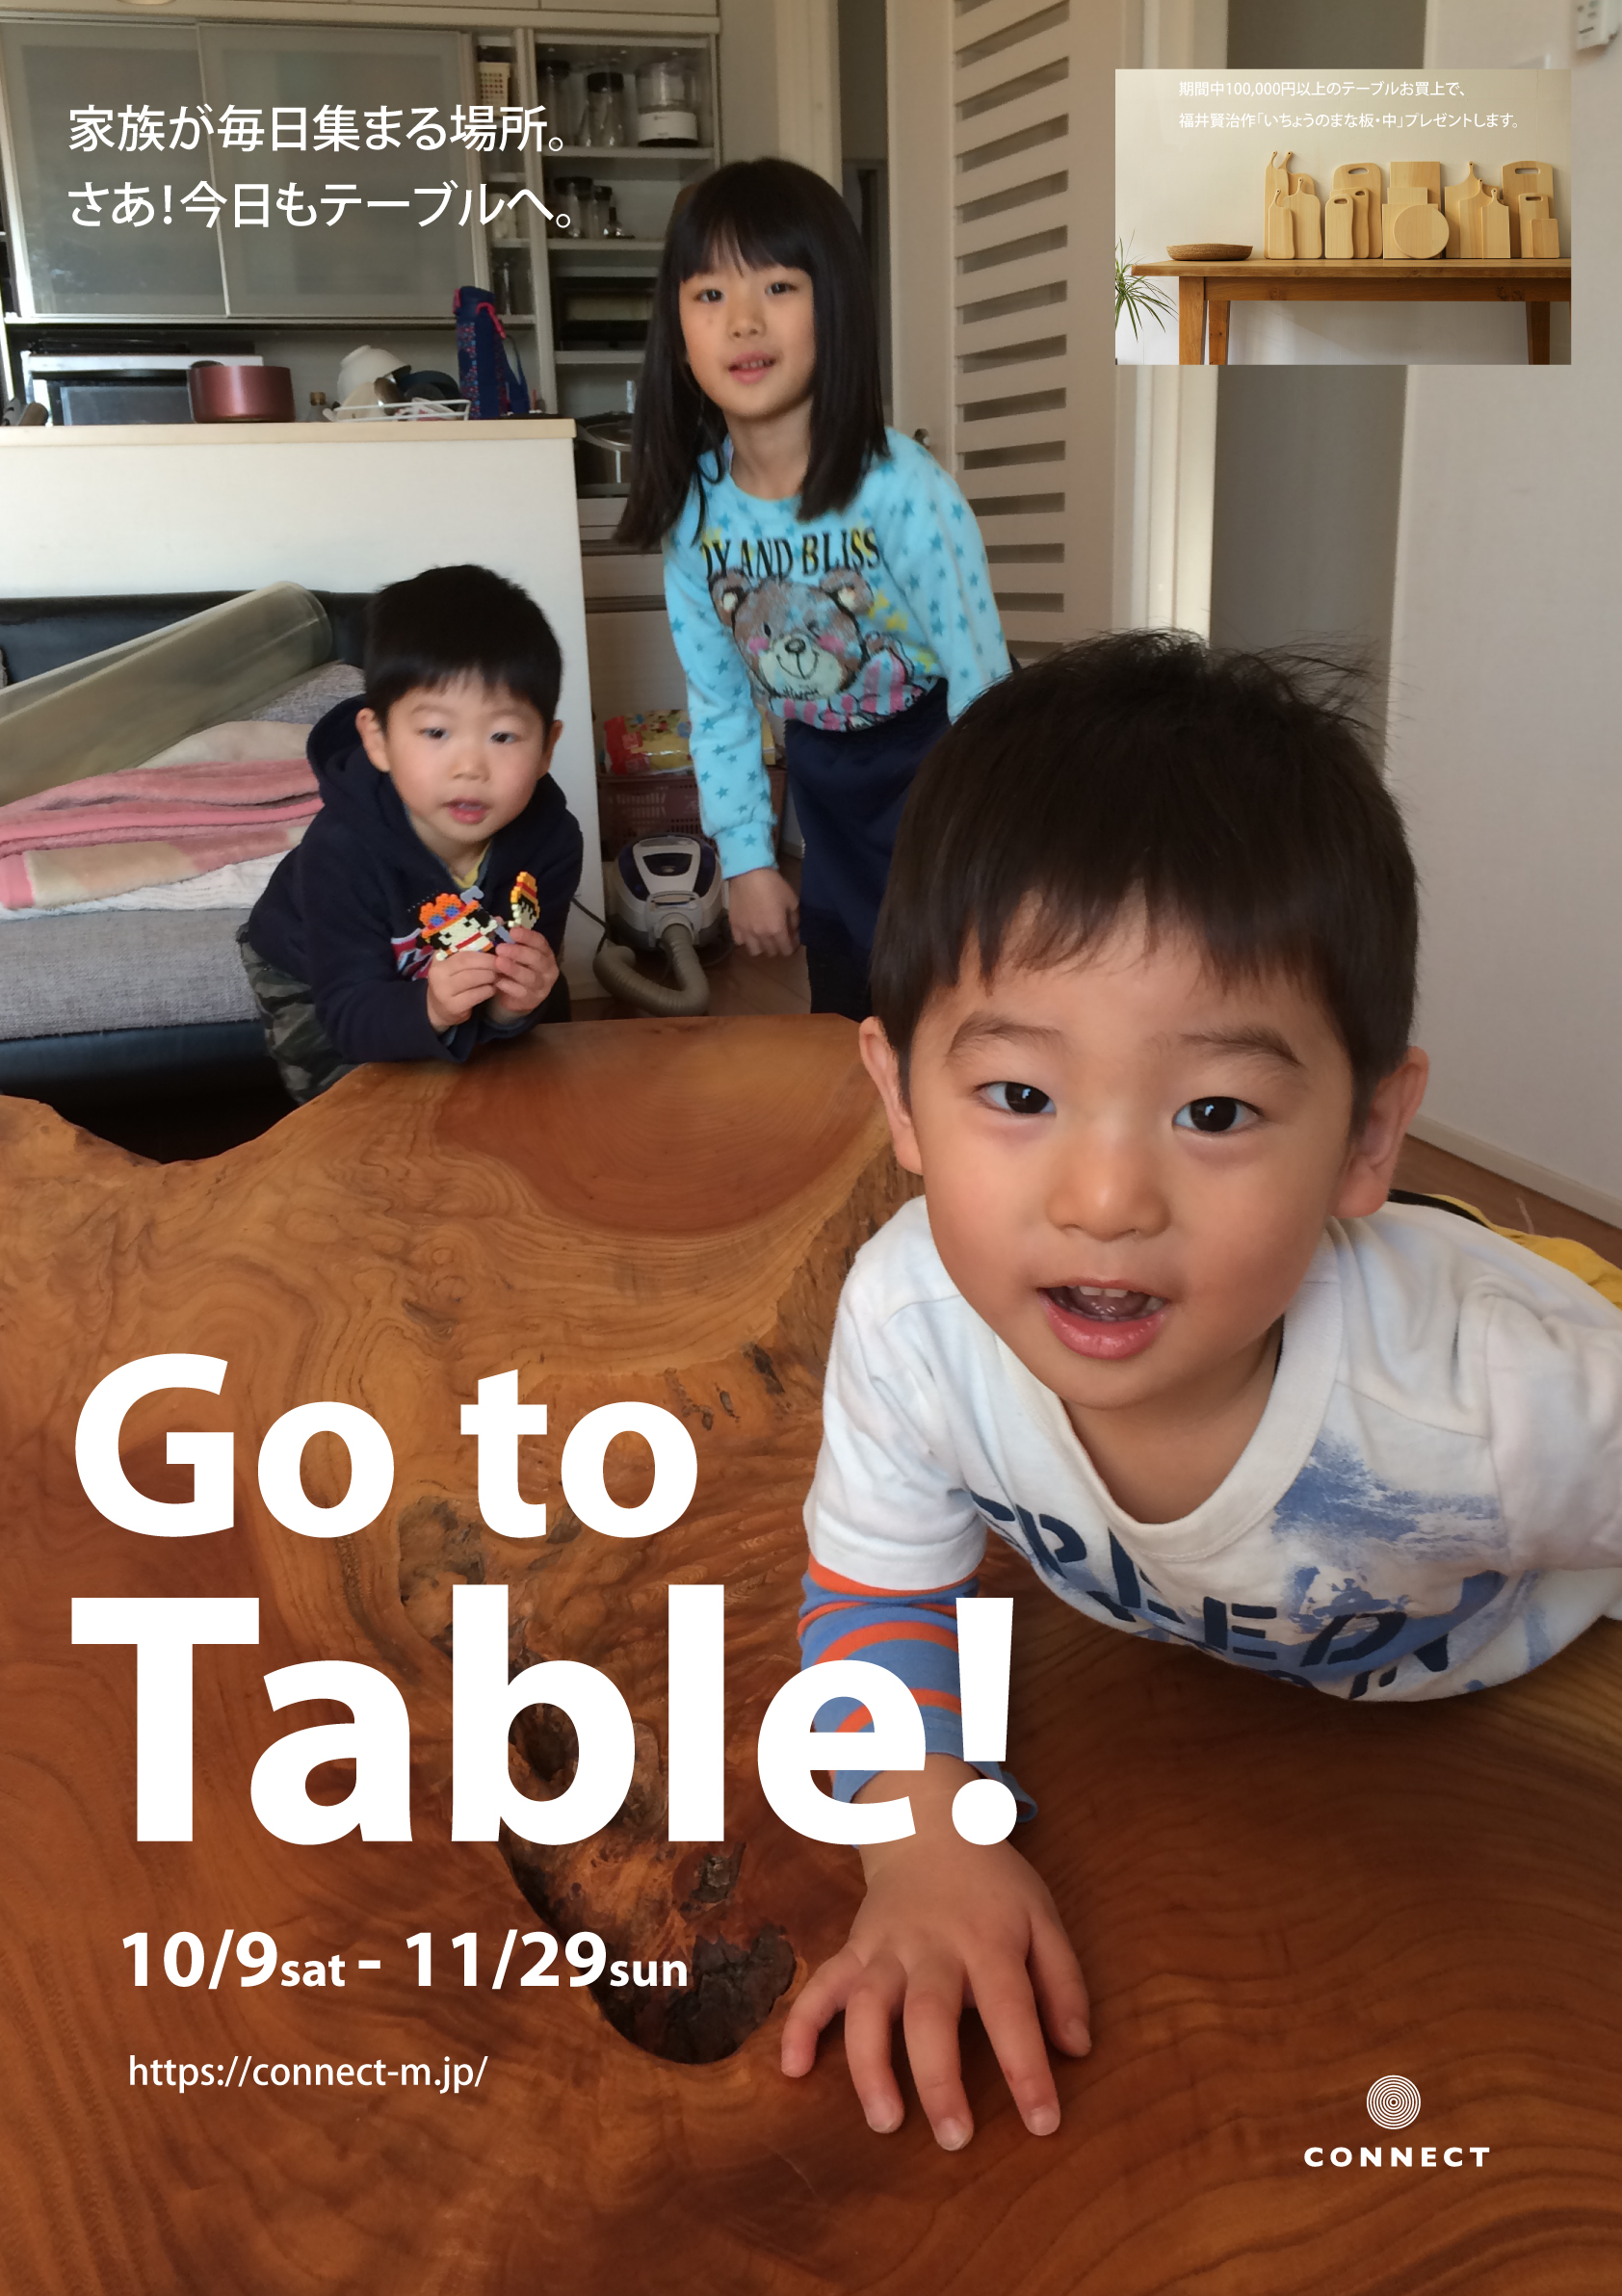 「Go to-Table!」キャンペーン 10/10(土)スタート